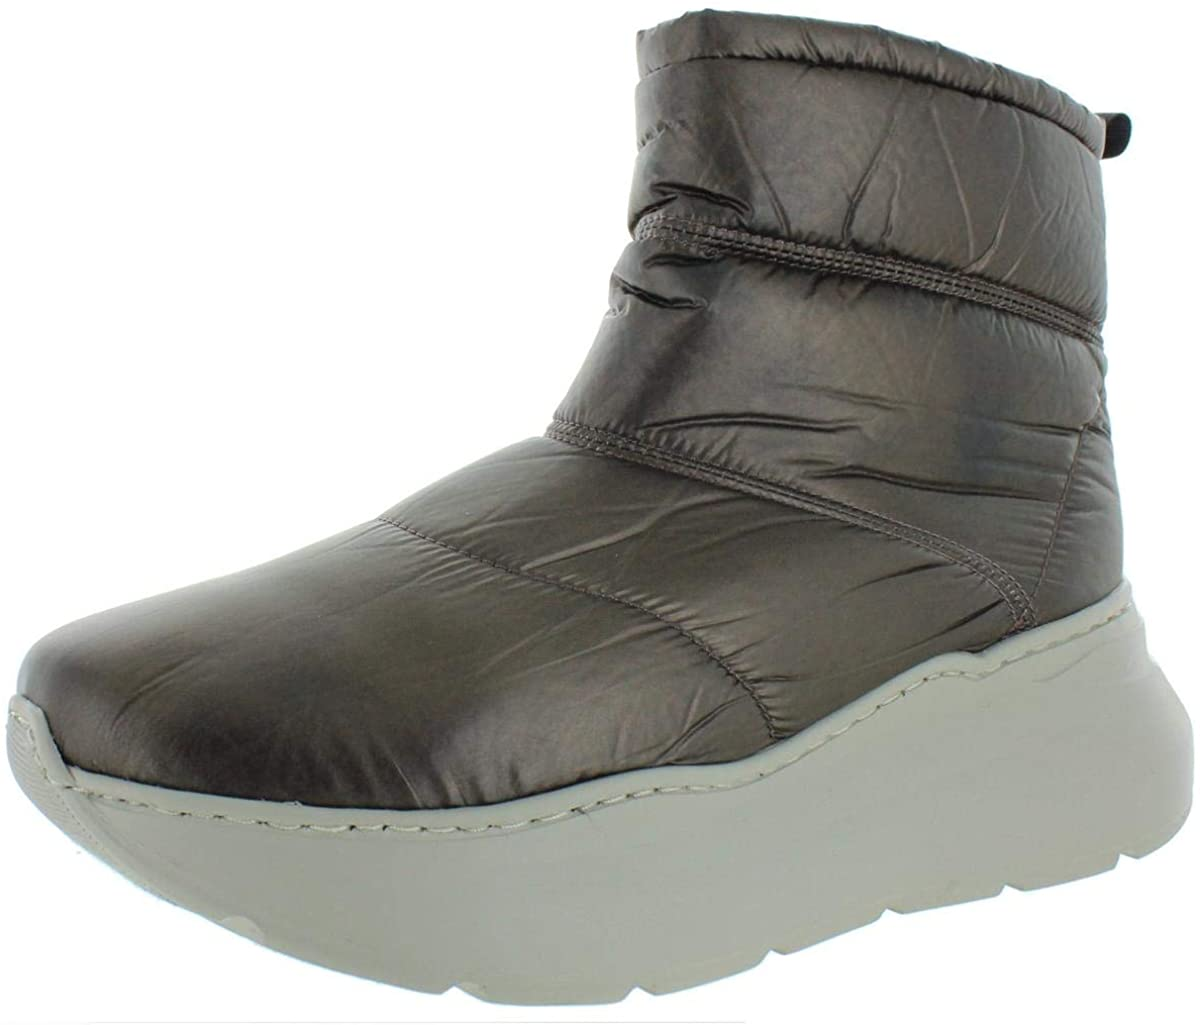 Free People Womens Snow to Surf Leather Quilted Winter Boots